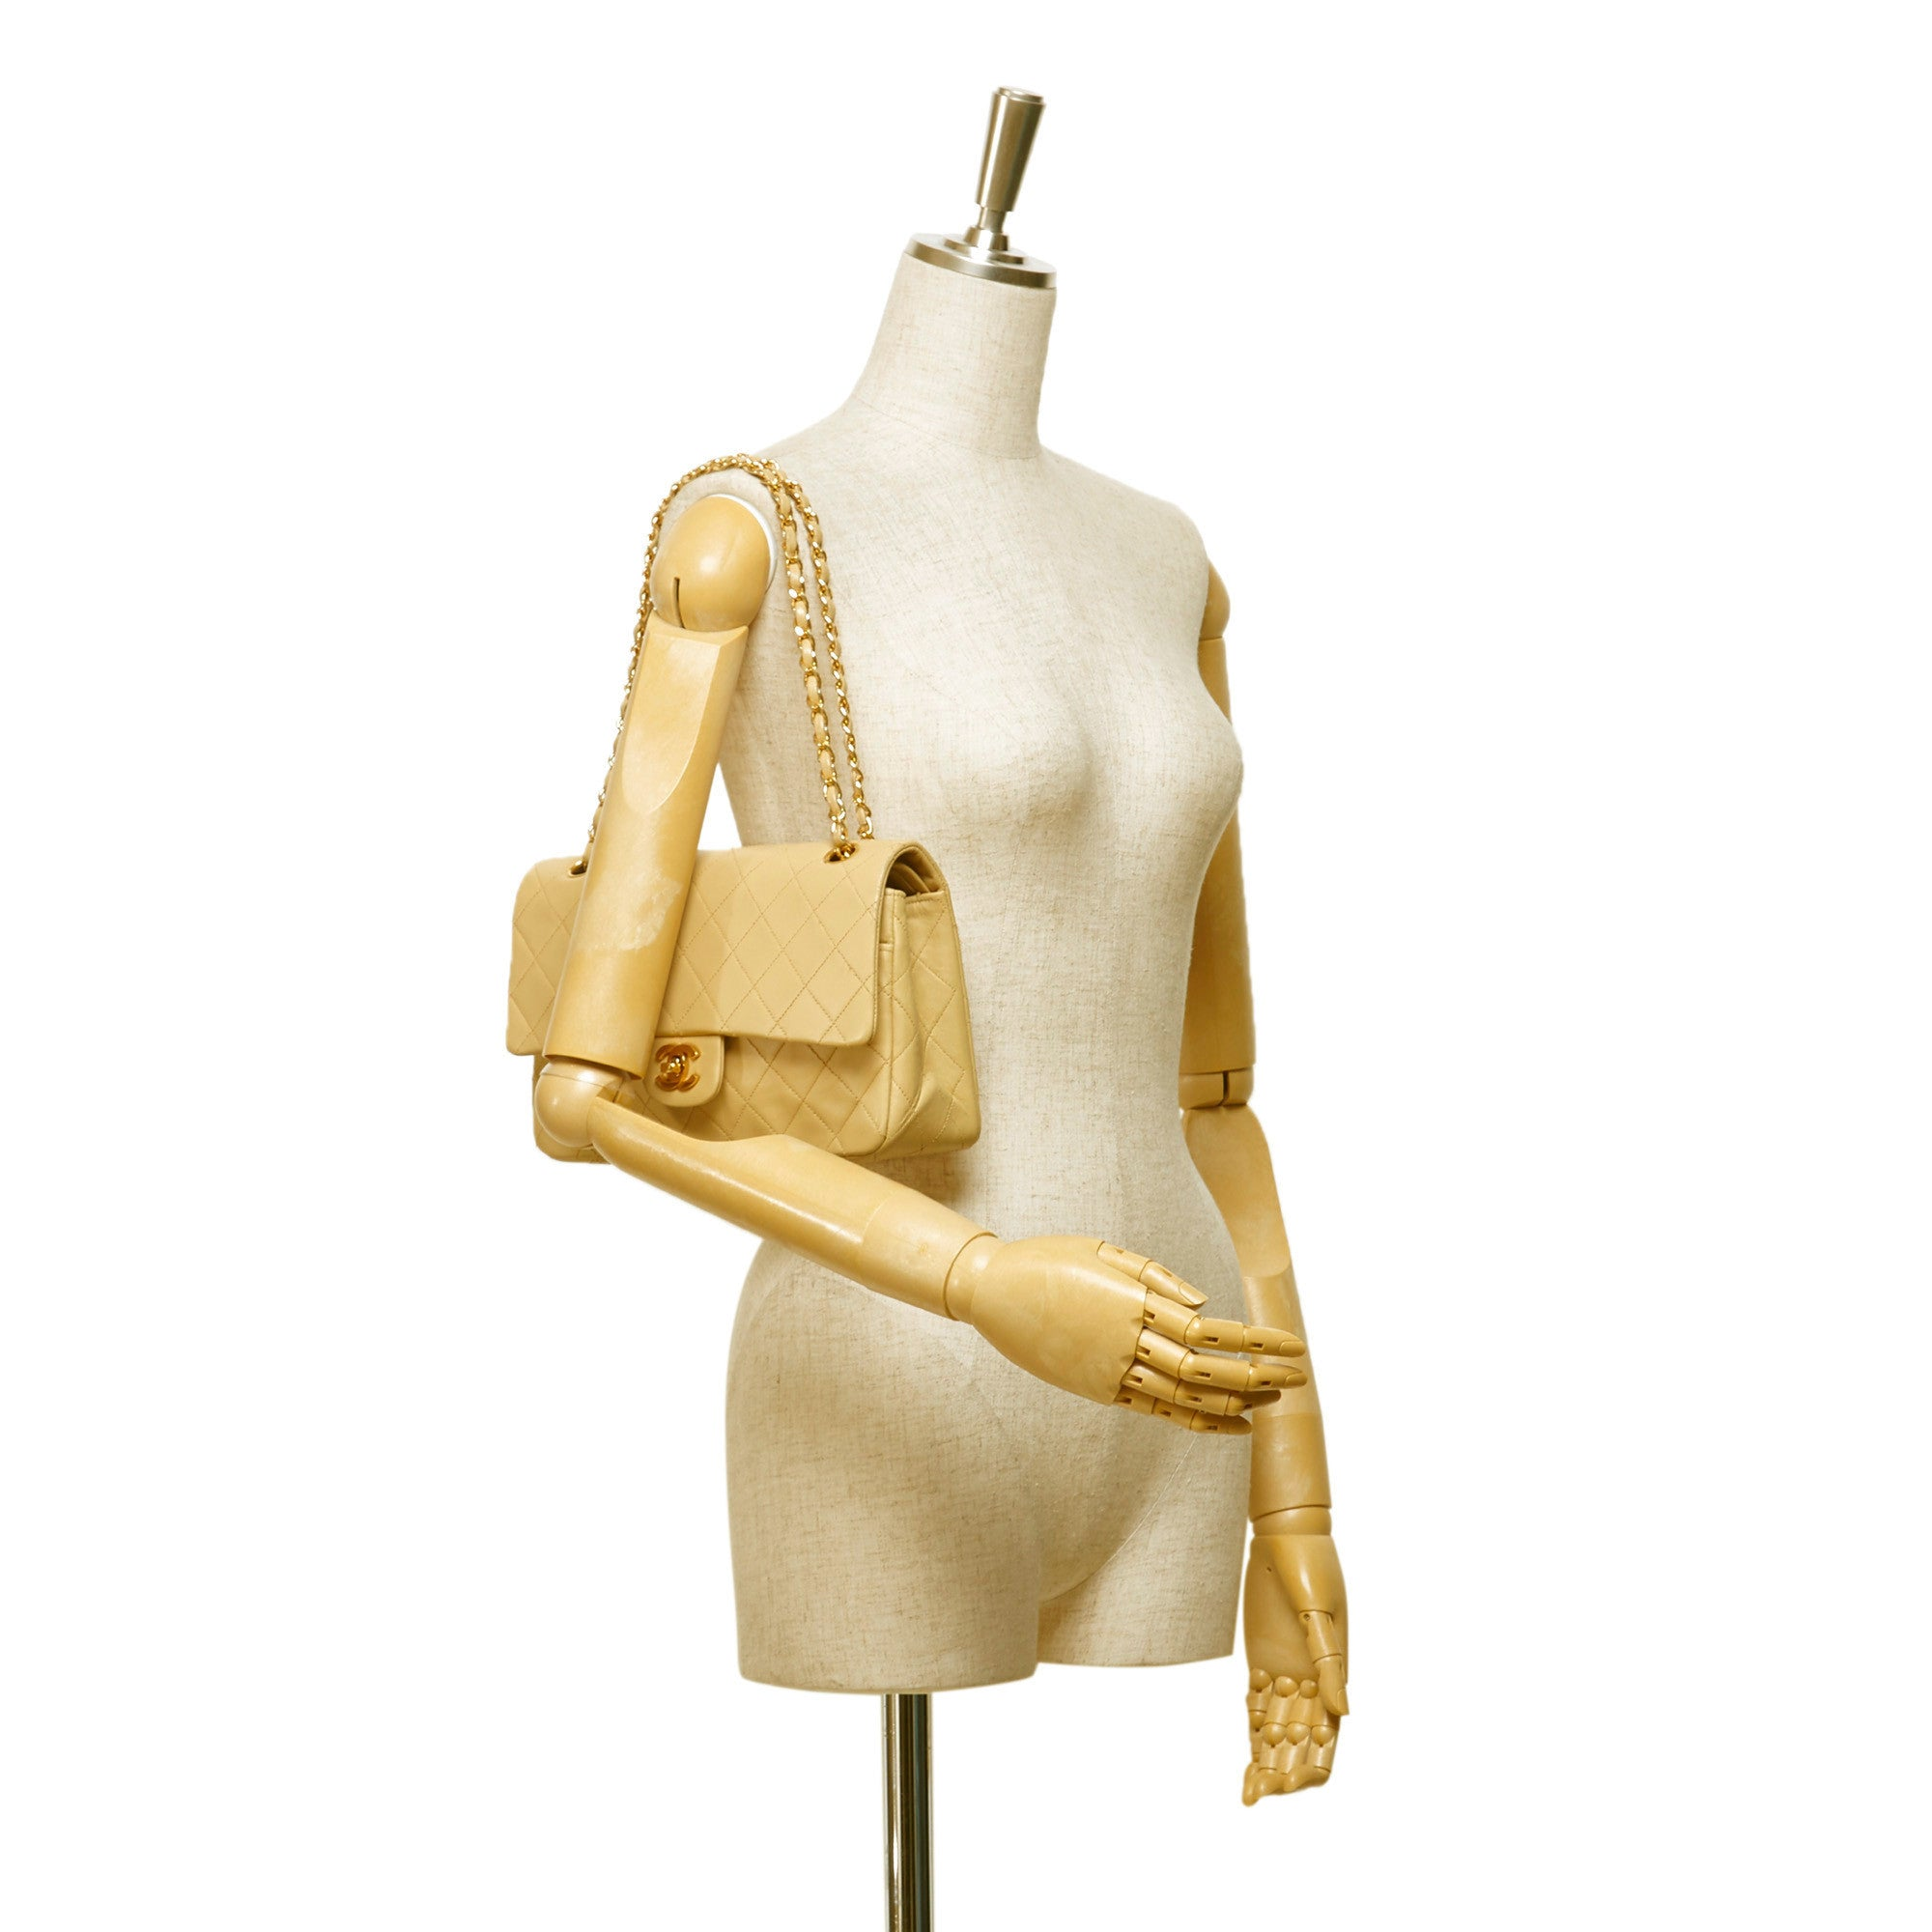 Beige 2.55 Medium Lambskin Double Flap Bag